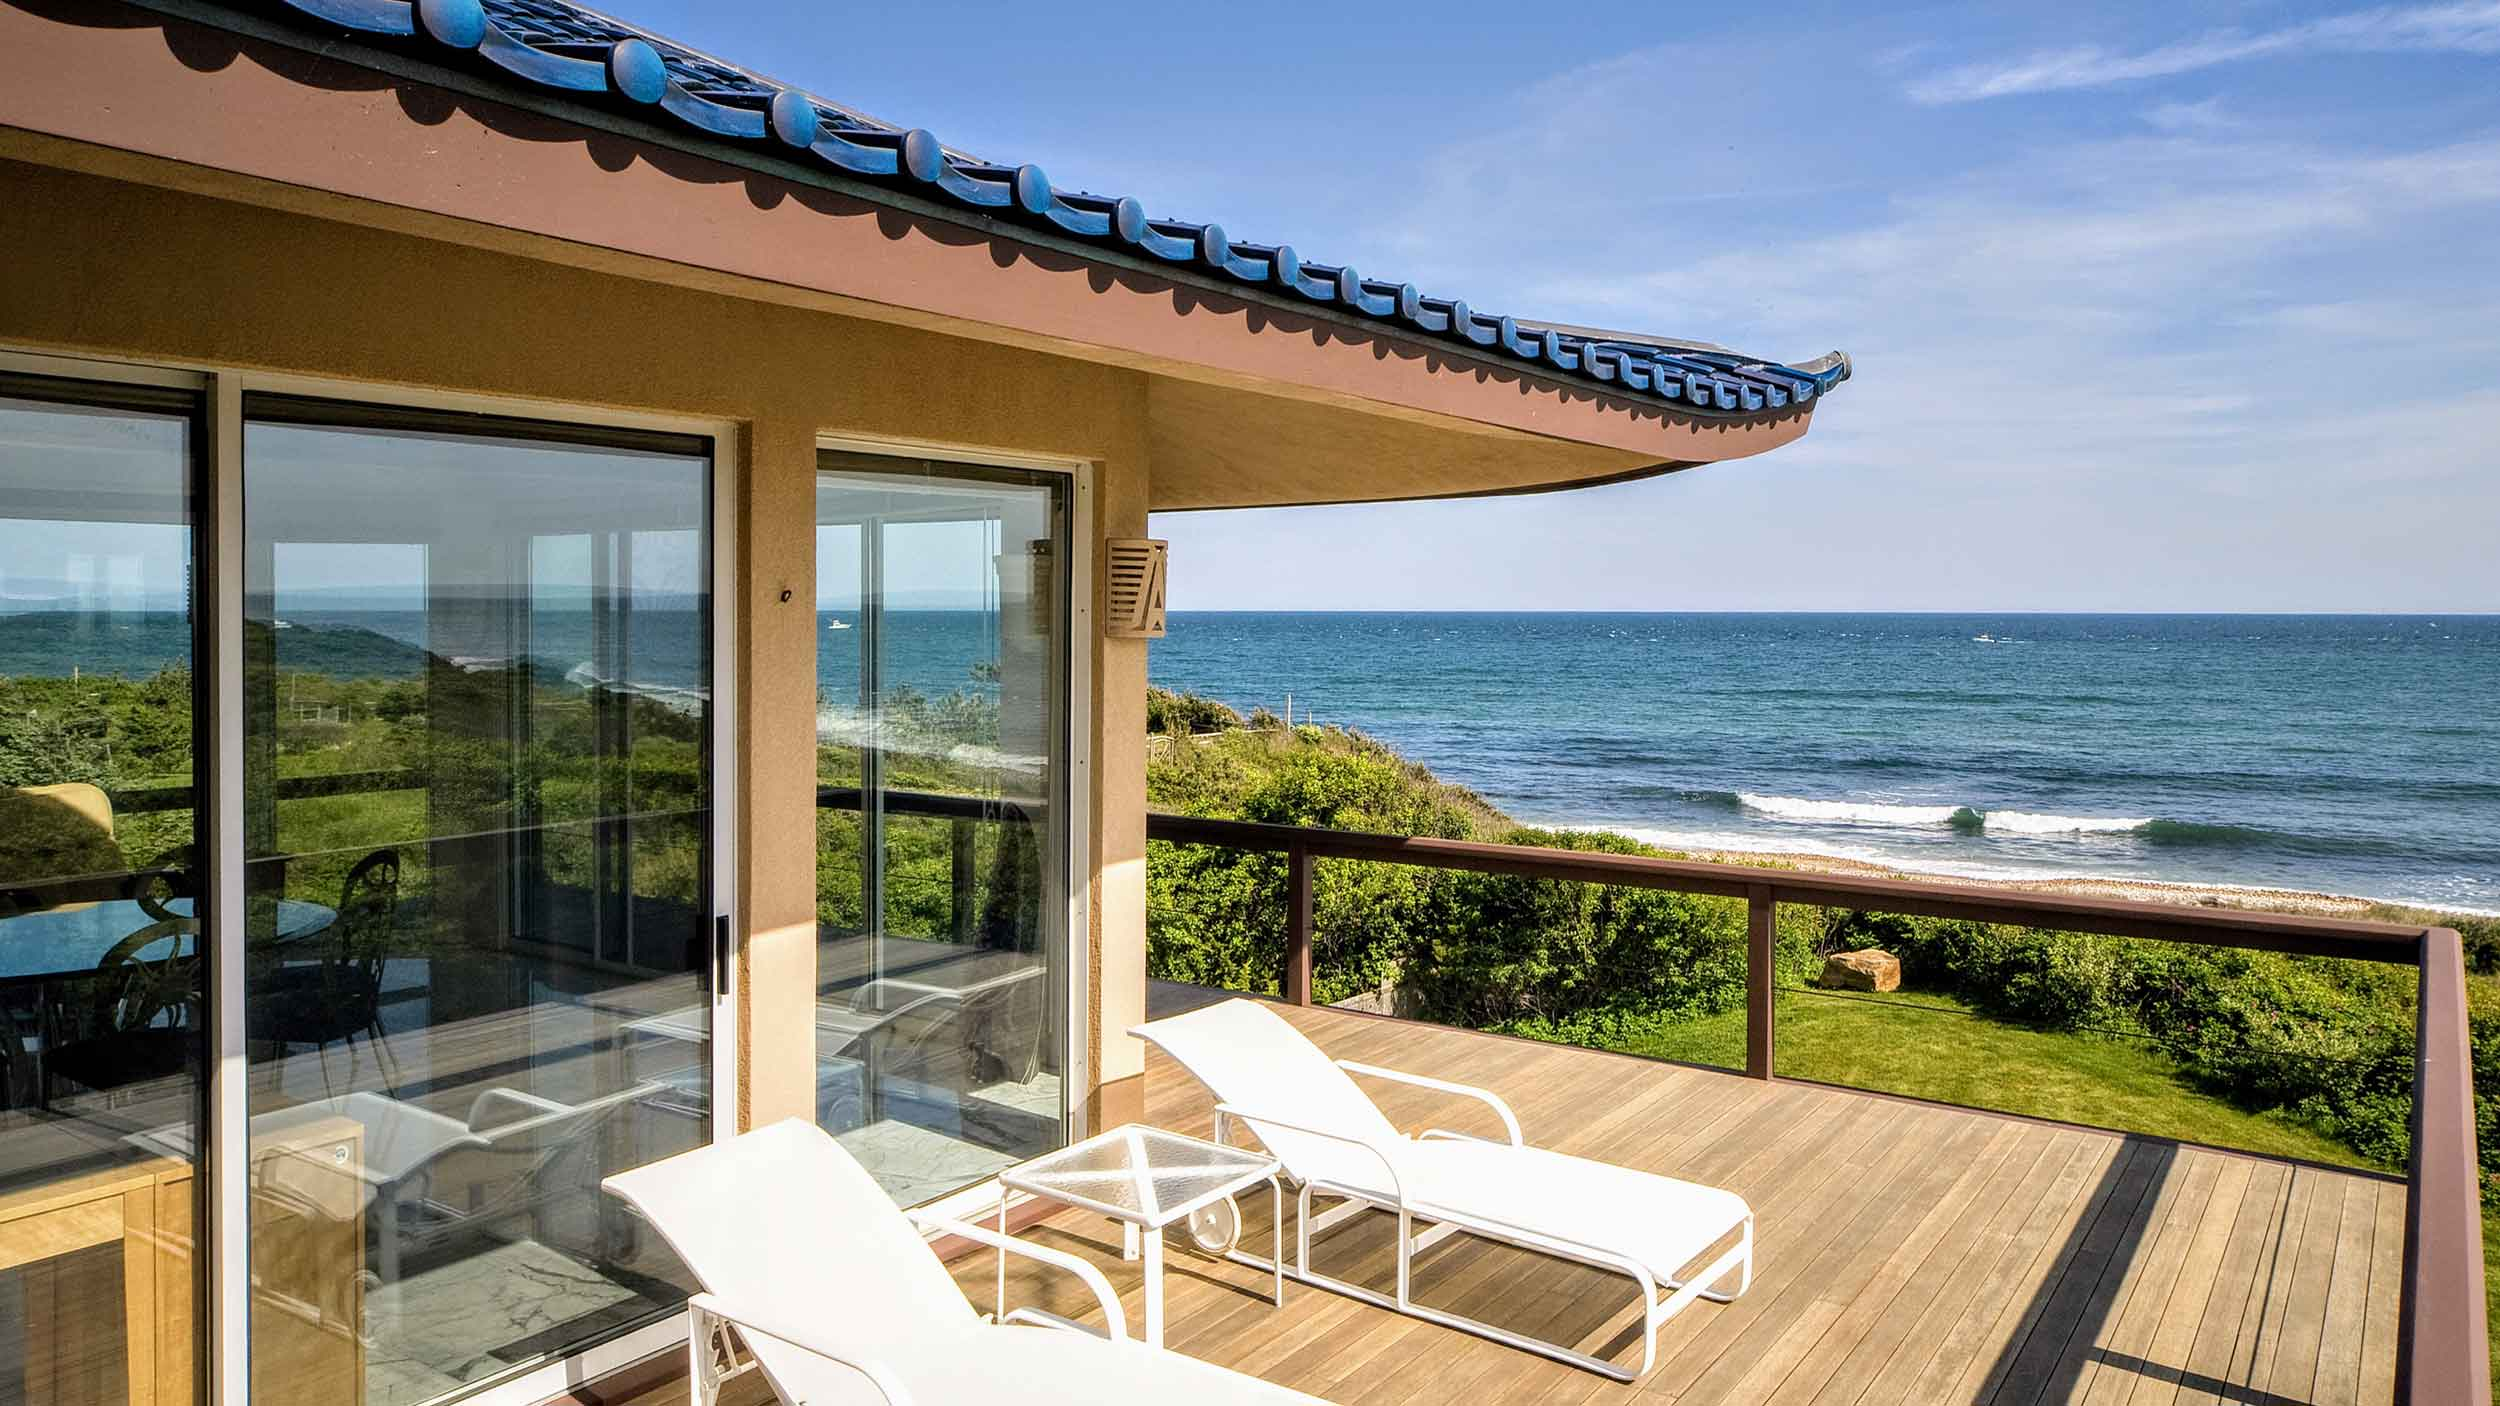 This Zen-inspired Hamptons residence is hidden within a private nature preserve on a bluff overlooking a secluded, sandy beach.